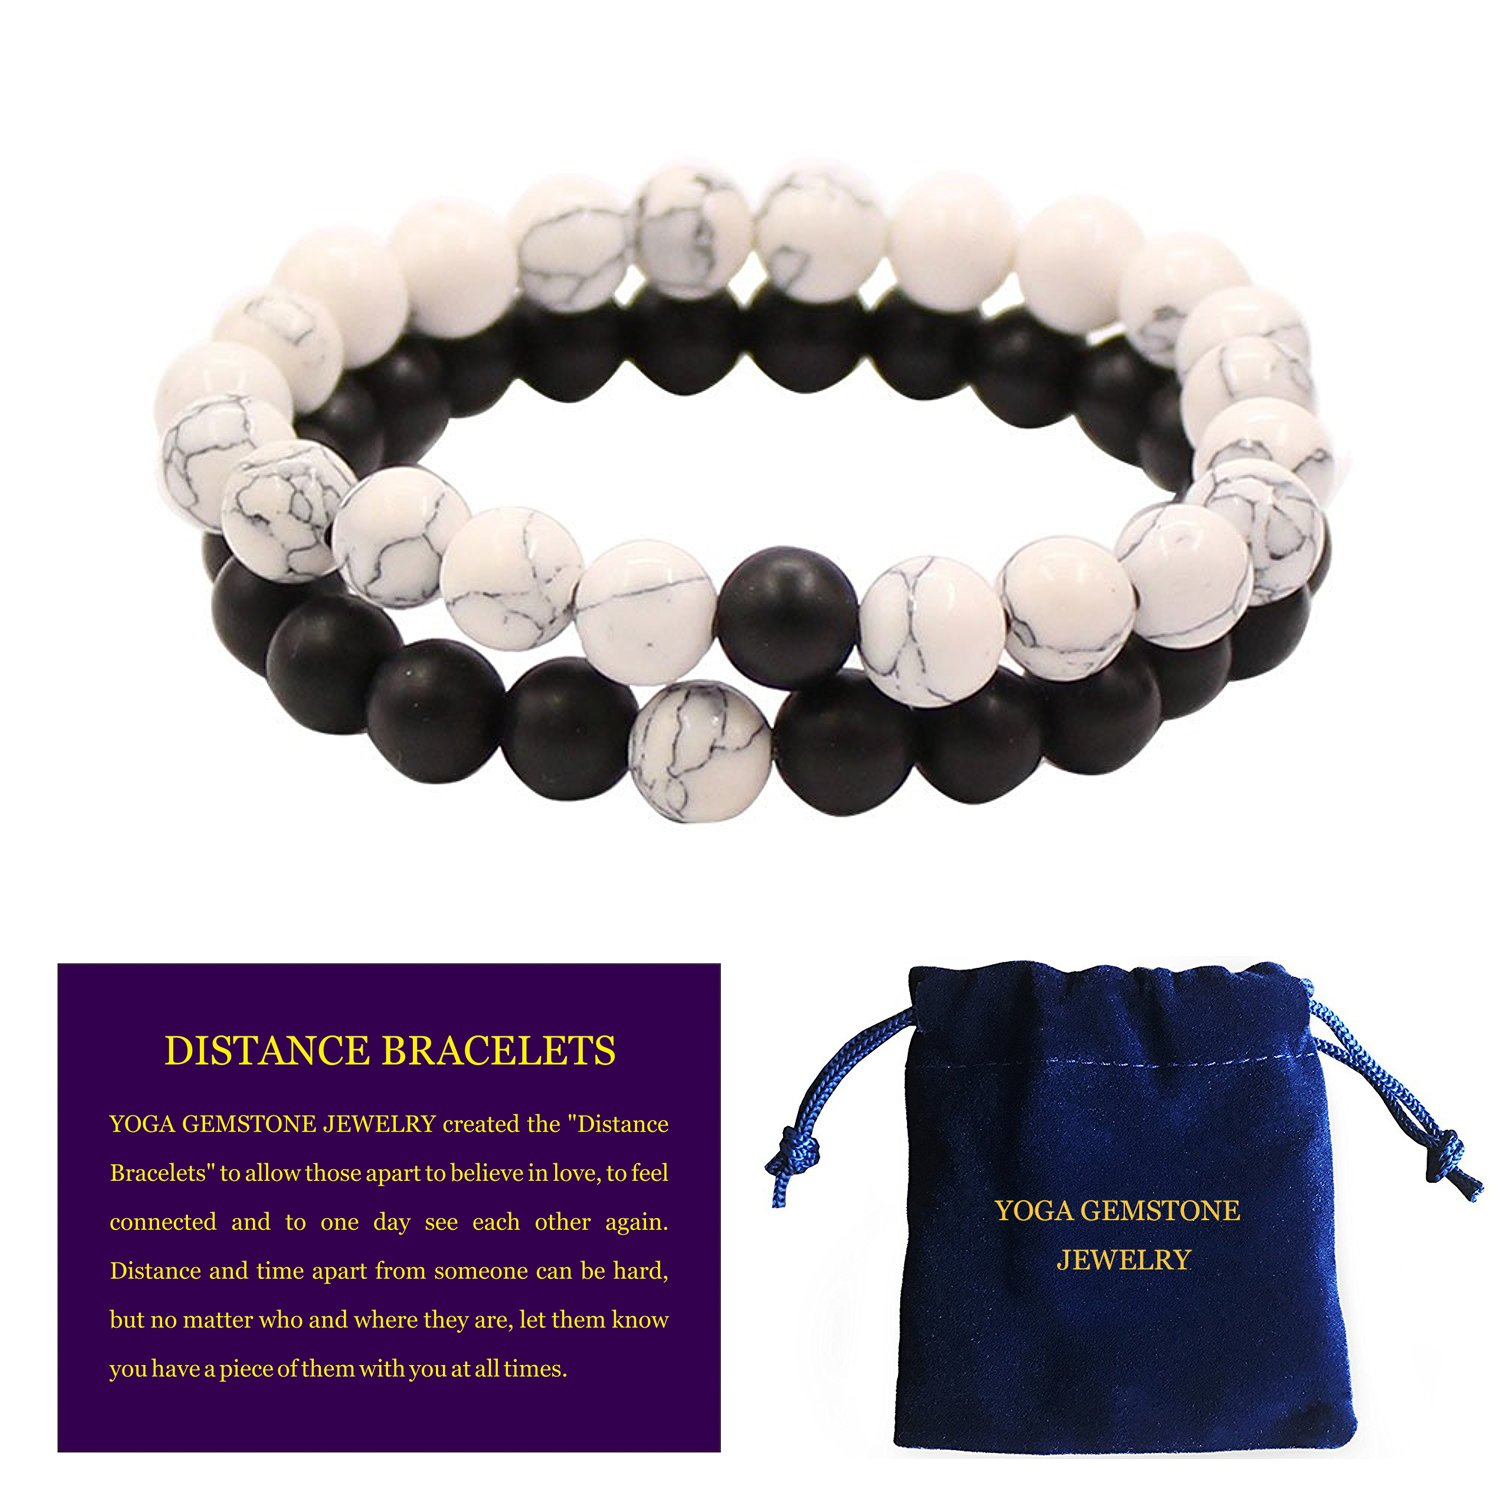 Yoga Gemstone Jewelry Distance Bracelets with Jewelry Bag & Meaning Card | Strong Elastic | Friendship Relationship Couples His Hers | Black Agate Onyx White Howlite CZ Crown Stretch Bracelet UK_B07D9XZ5Q7